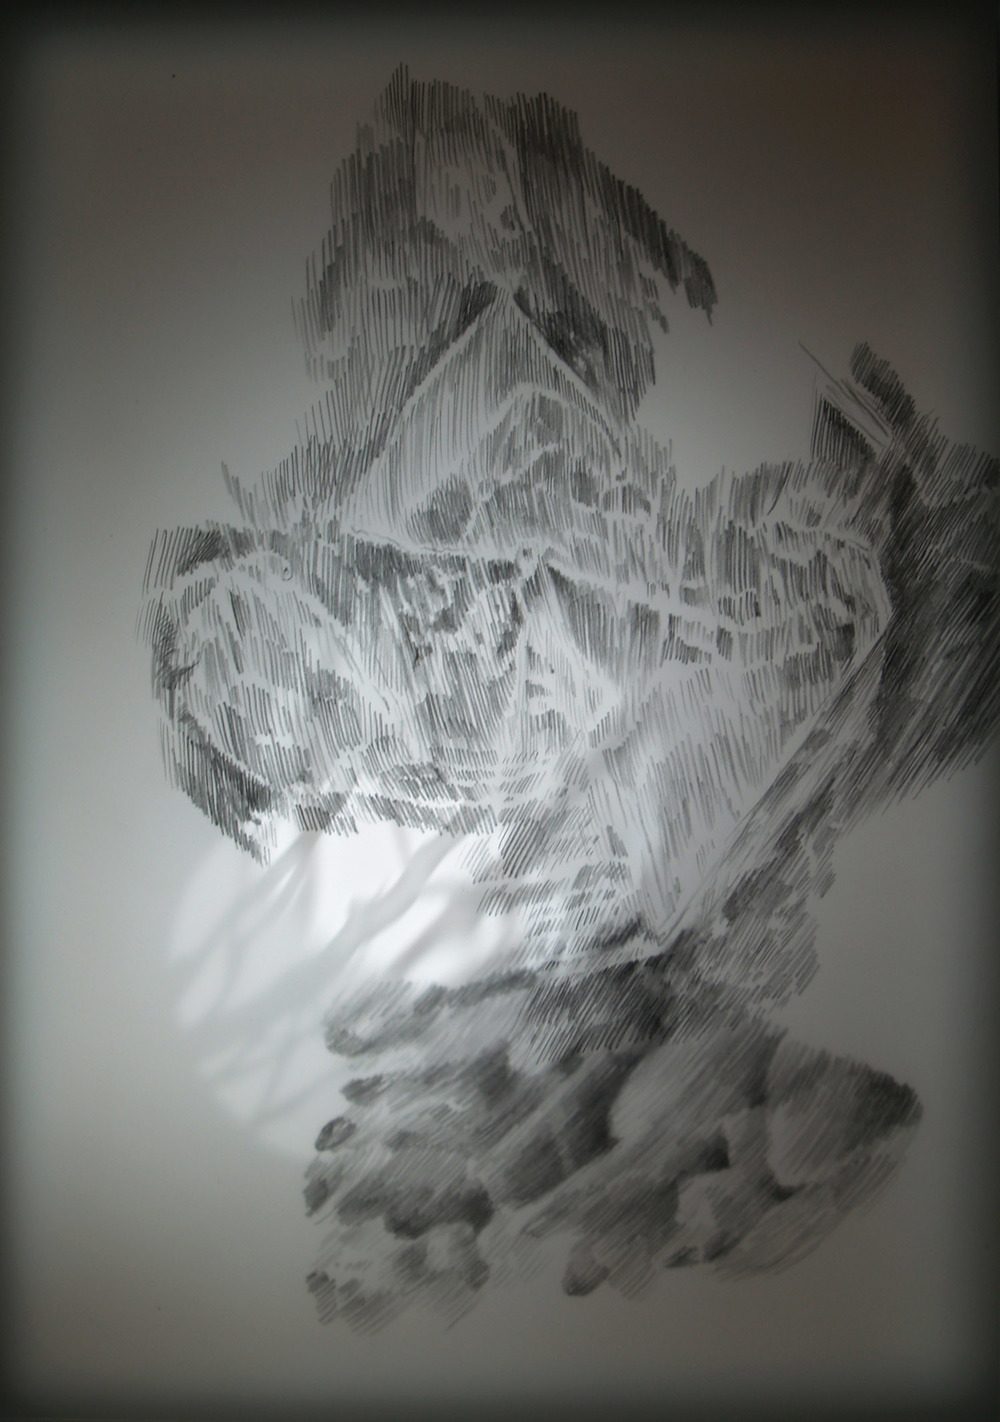 Echoes (top view, detail), graphite on drafting film, perspex, MDF, low voltage light, 30 x 21 x 81 cm